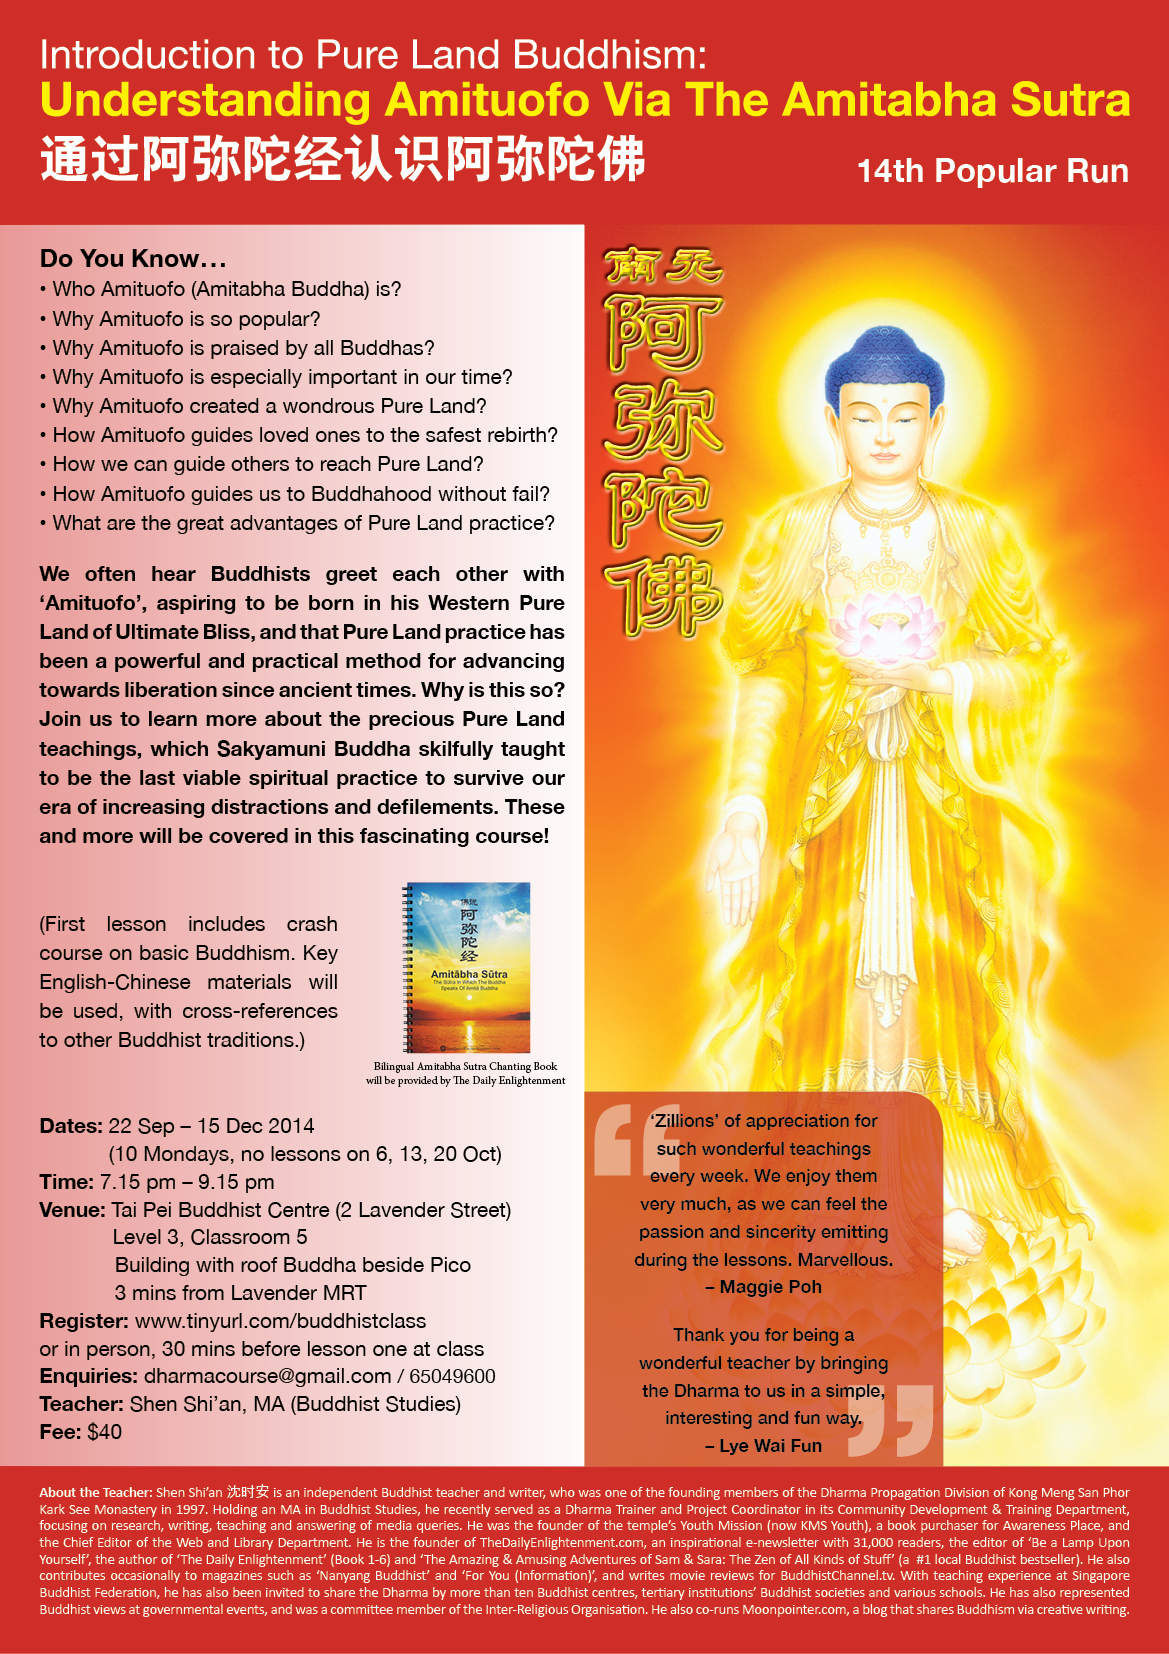 The Daily Enlightenment Understanding Amituofo Via The Amitabha Sutra 14th Run